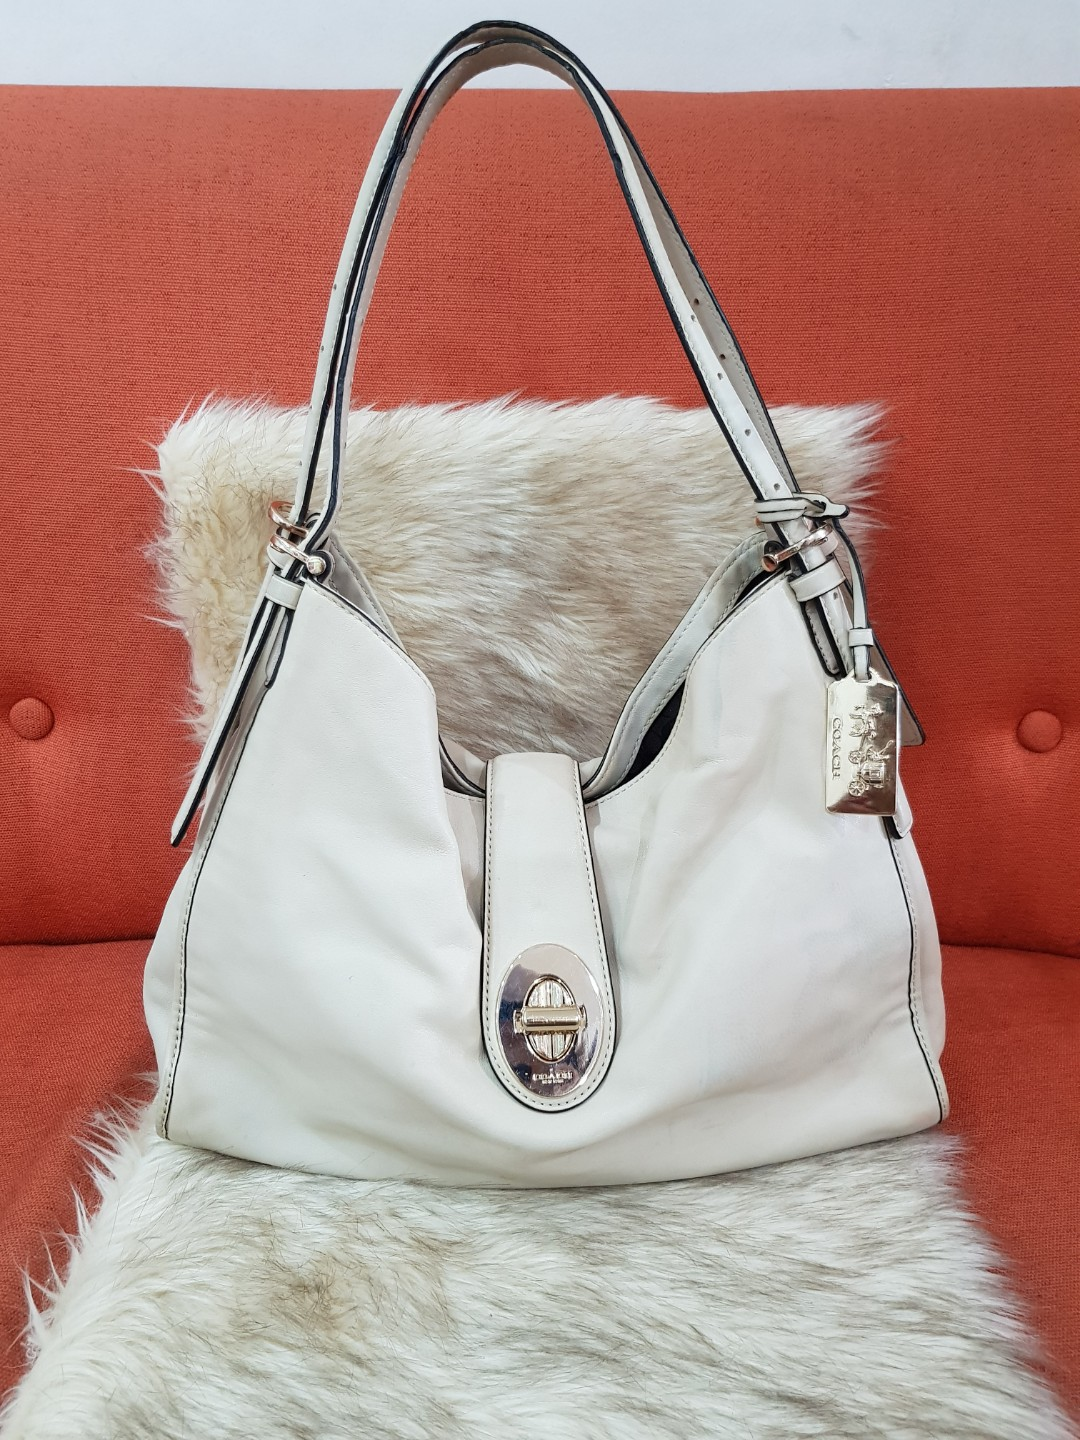 Authentic Coach 32221 Madison Carlyle Offwhite Leather Shoulder Handbag Luxury Bags Wallets On Carou